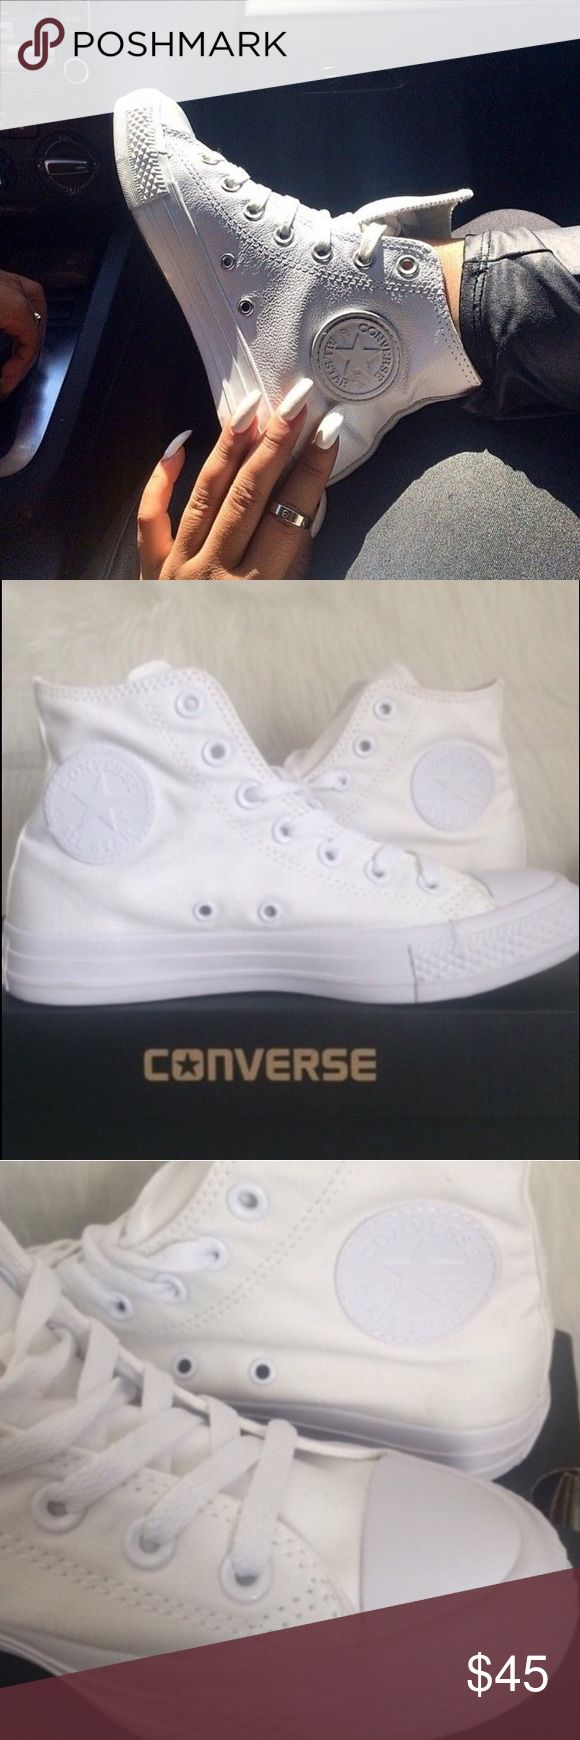 FLASH SALE  CONVERSE WOMENS SIZE 7.5 ALL WHITE Brand new in box. Womens size 7.5. All white. Converse Shoes Sneakers